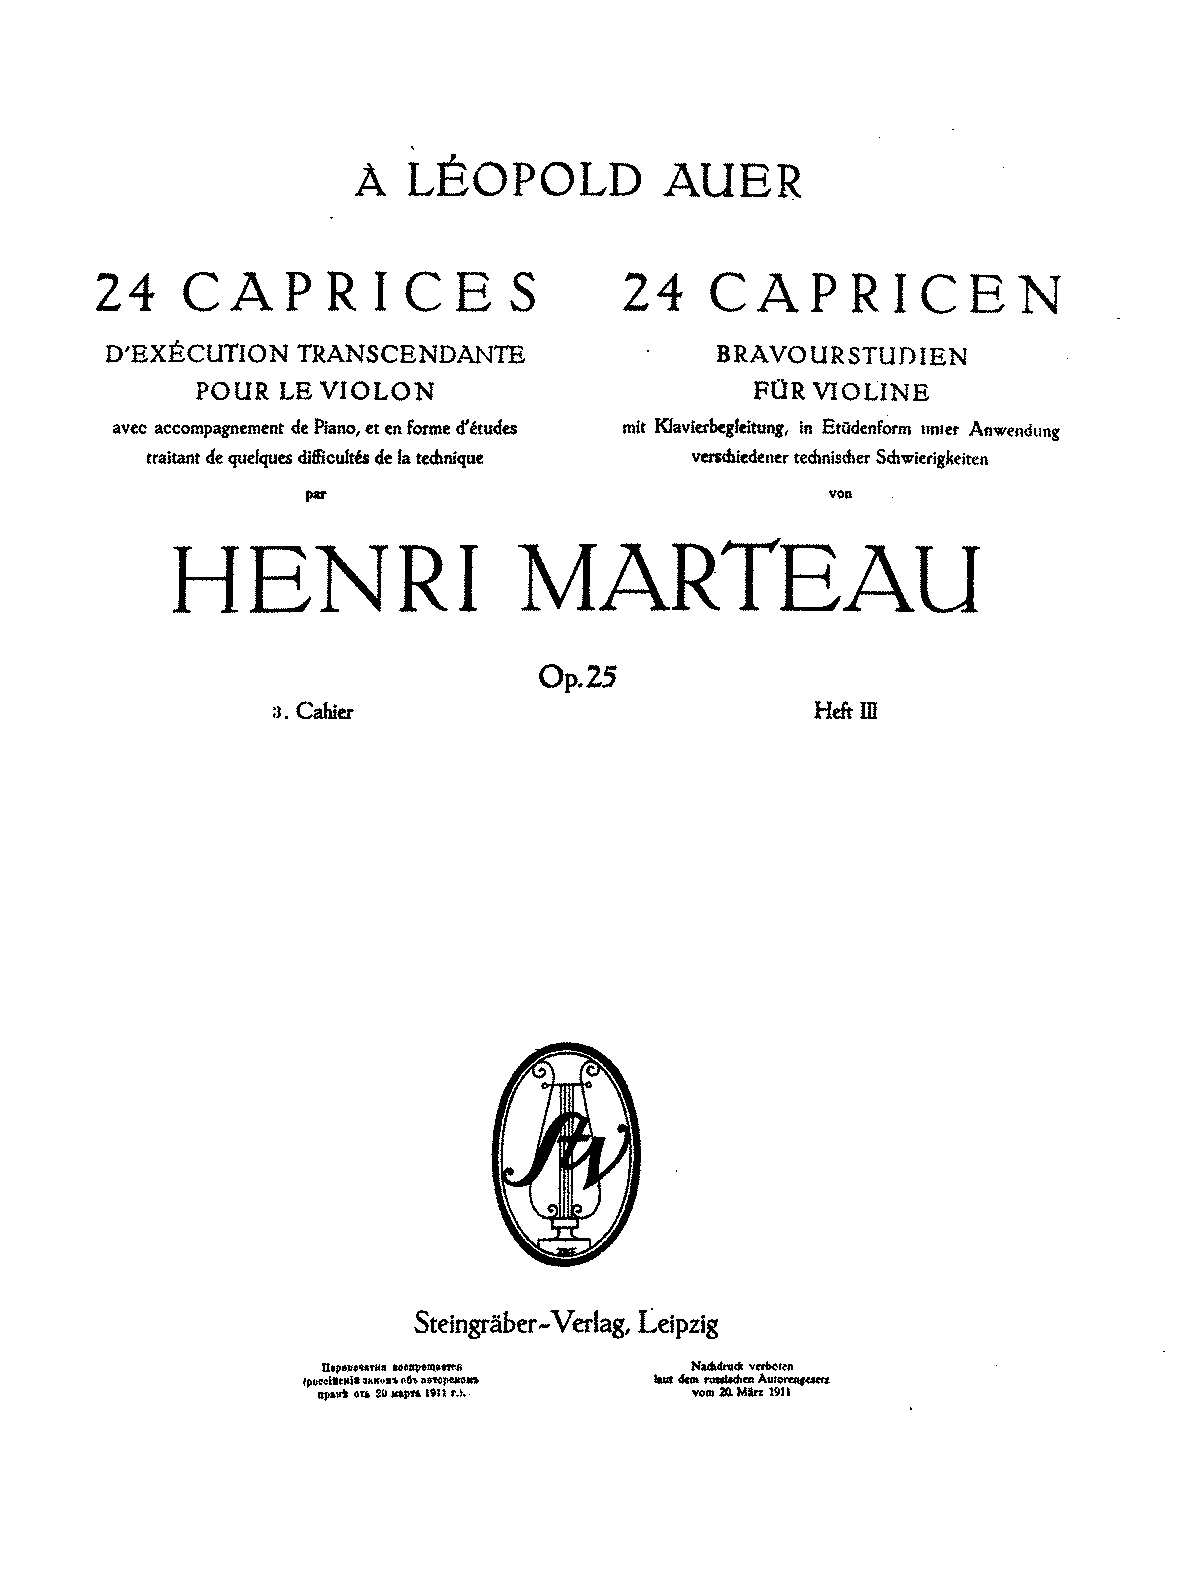 PMLP159167-Marteau - 24 Caprices Op25 Bk3 for Violin and Piano cover.pdf